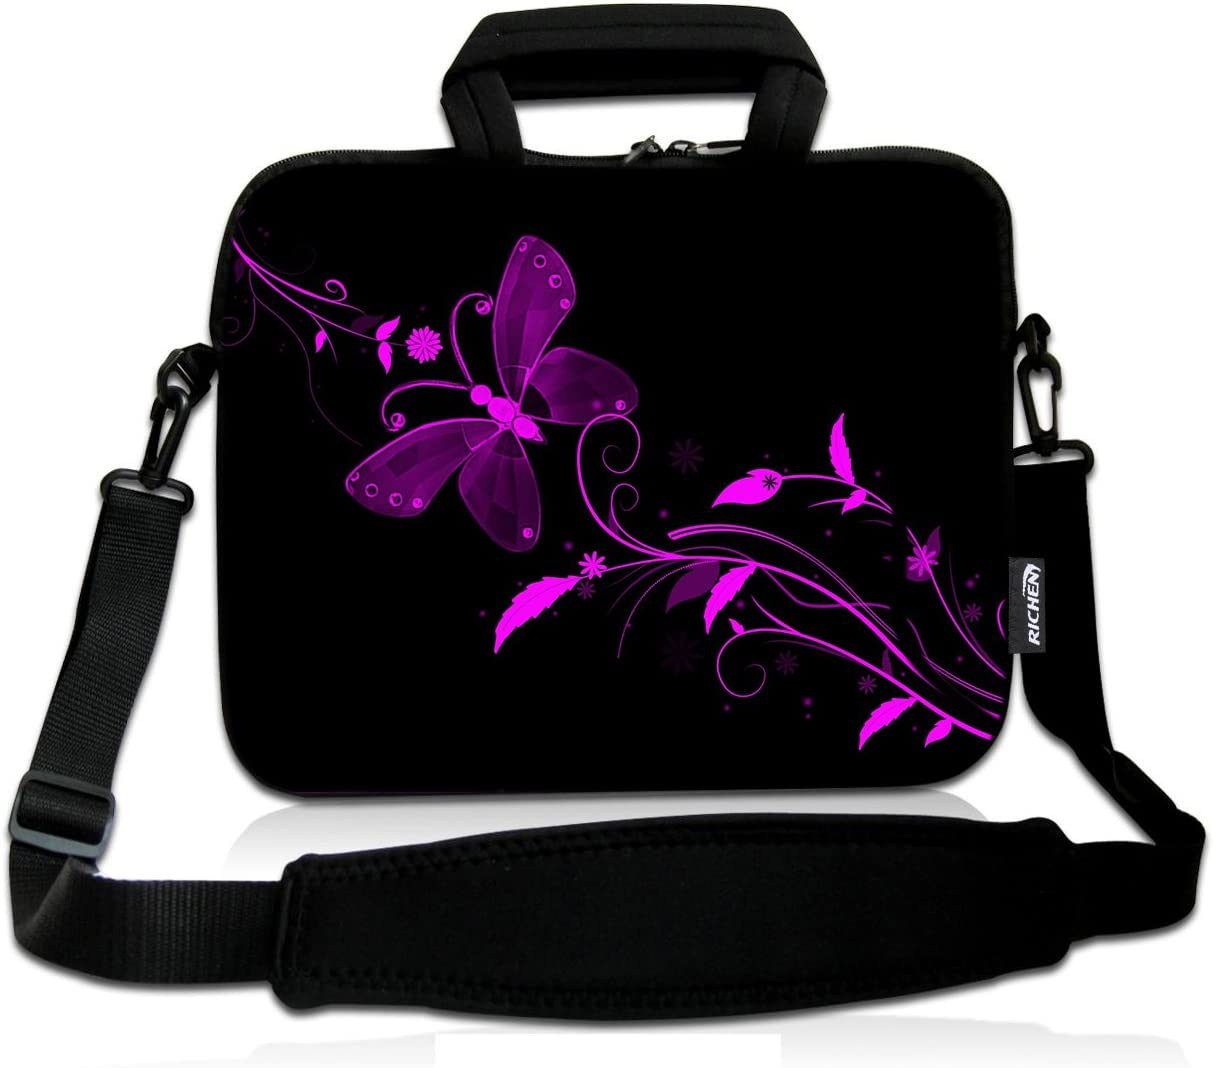 RICHEN 9.7 10 10.1 10.2 inches Messenger Bag Carring Case Sleeve with Handle Accessory Pocket Fits 7 to 10-Inch Laptops/Notebook/ebooks/Kids tablet/Pad (7-10.2 inch, Nice Butterfly)